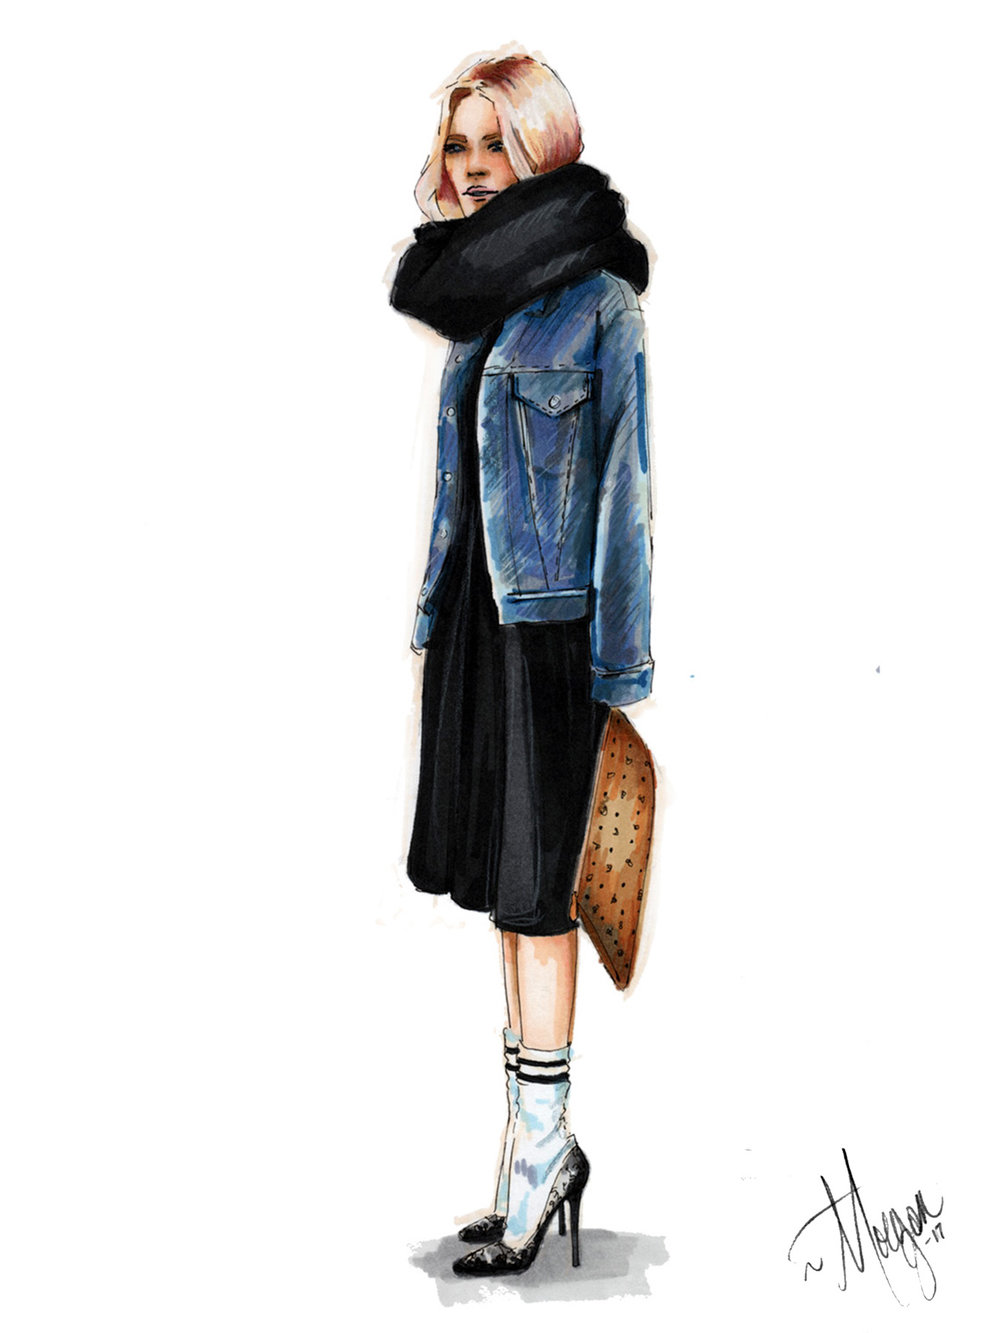 denim-jacket-illustration-morgan-swank-studio.jpg